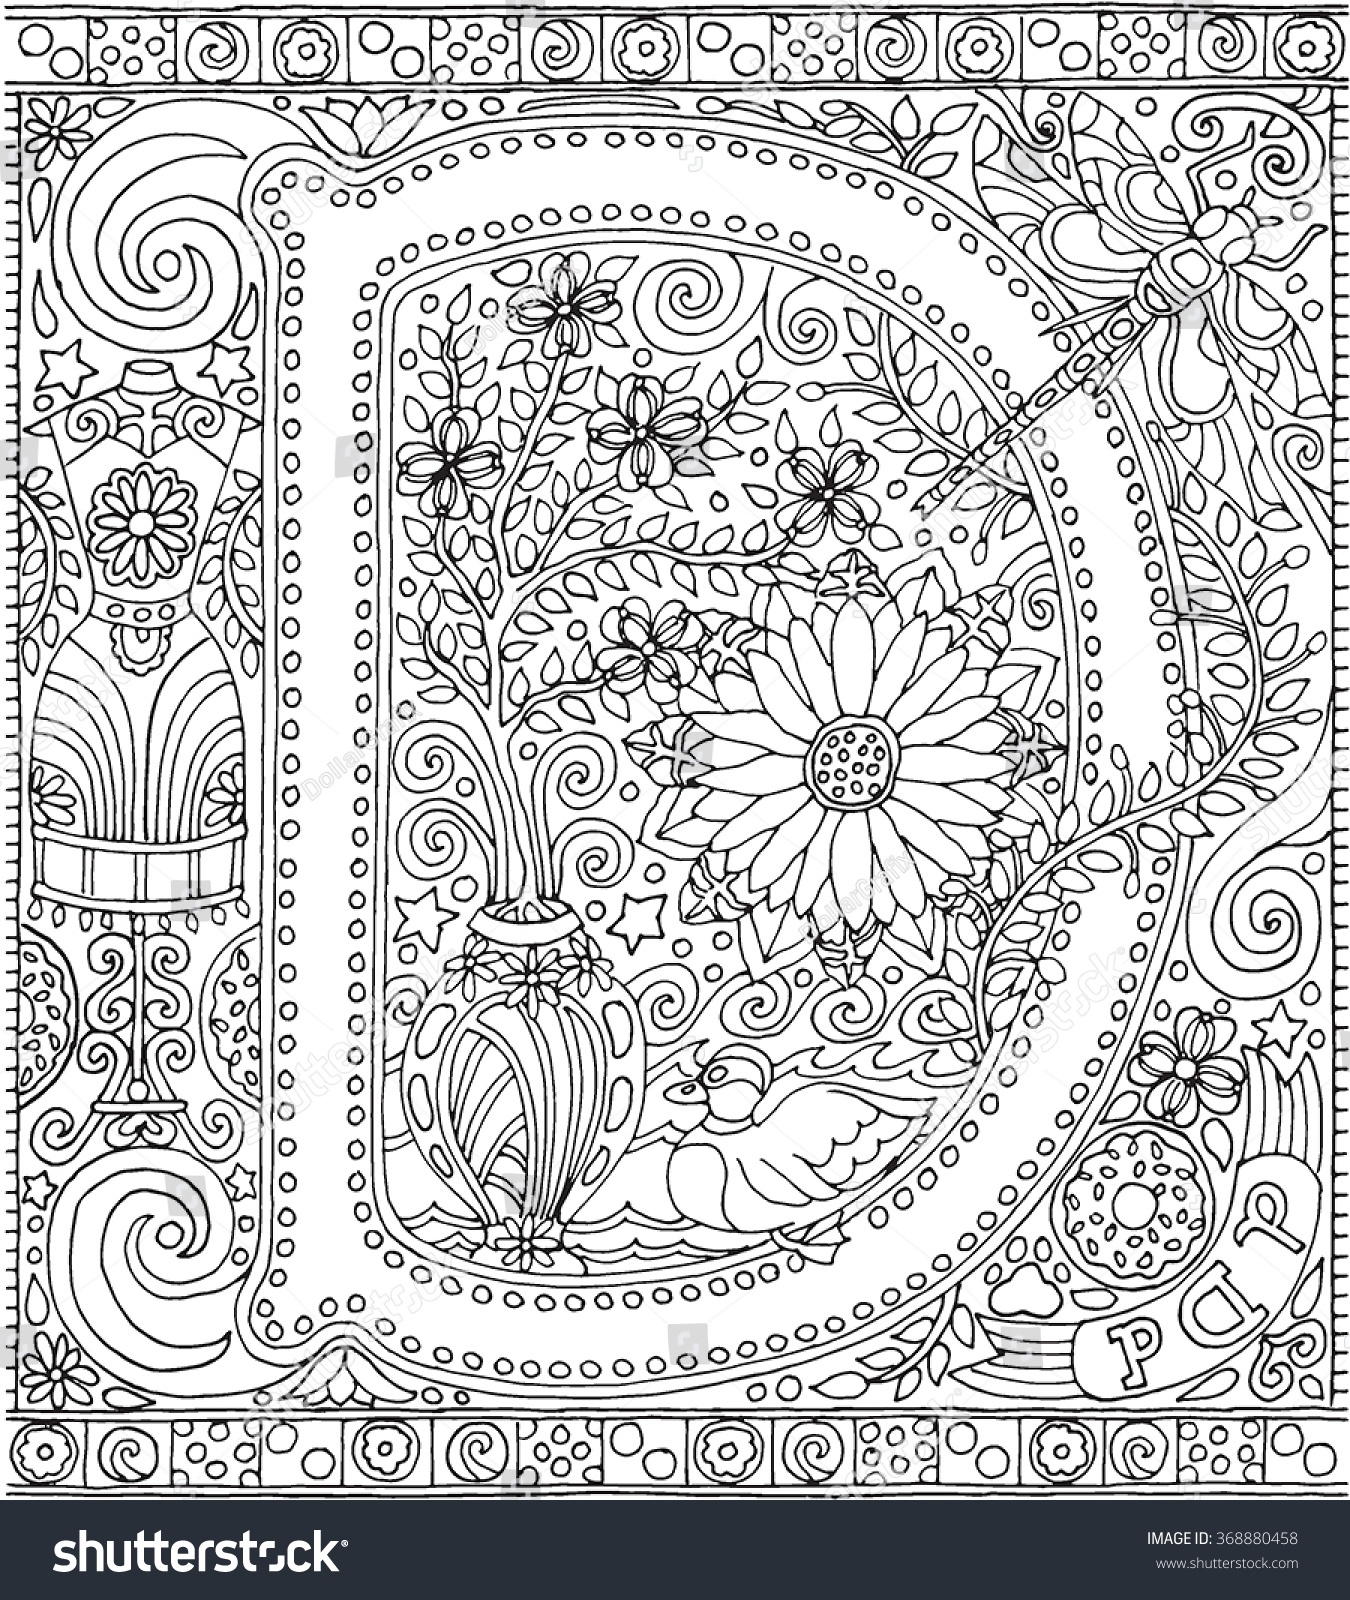 Free coloring pages for relaxation - Adult Coloring Book Art Alphabet Letter D Zen Relaxation